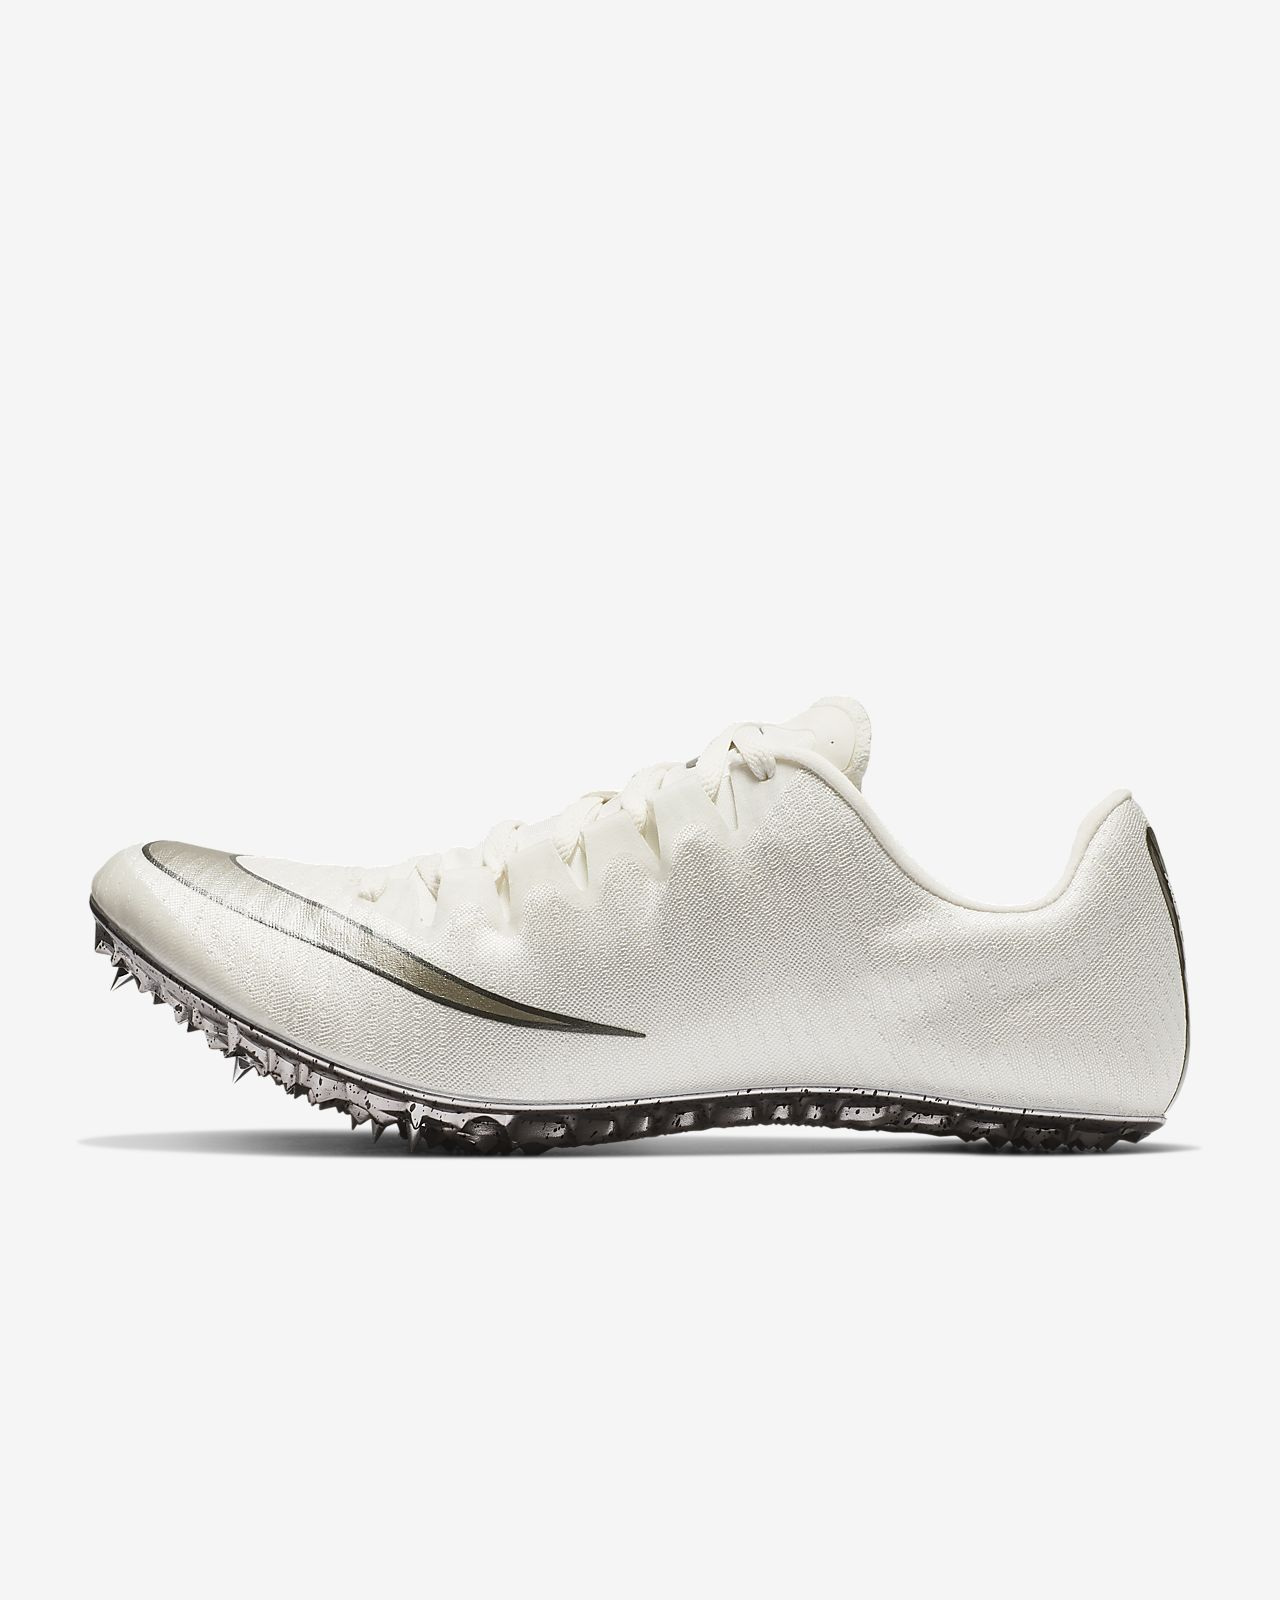 new styles 53c79 51bd8 ... Nike Superfly Elite Racing Spike